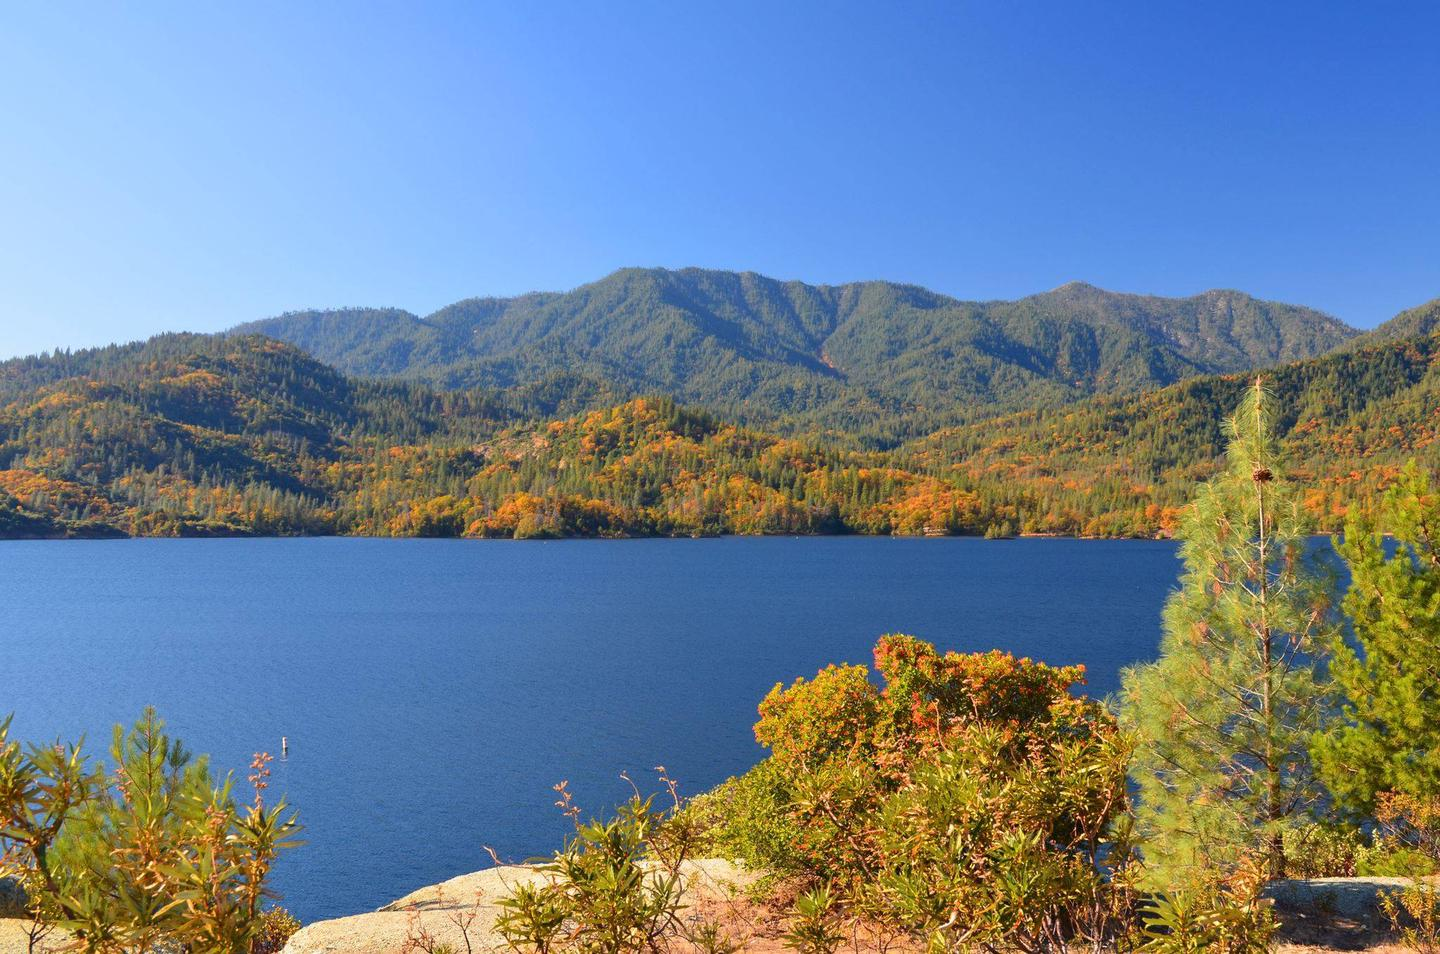 Steep mountains rise from the shores of a blue lake, under a cloudless blue sky. Fall foliage adds splashes of bright orange to a backdrop of green trees along the shore.Shoreline of Whiskeytown Lake in fall